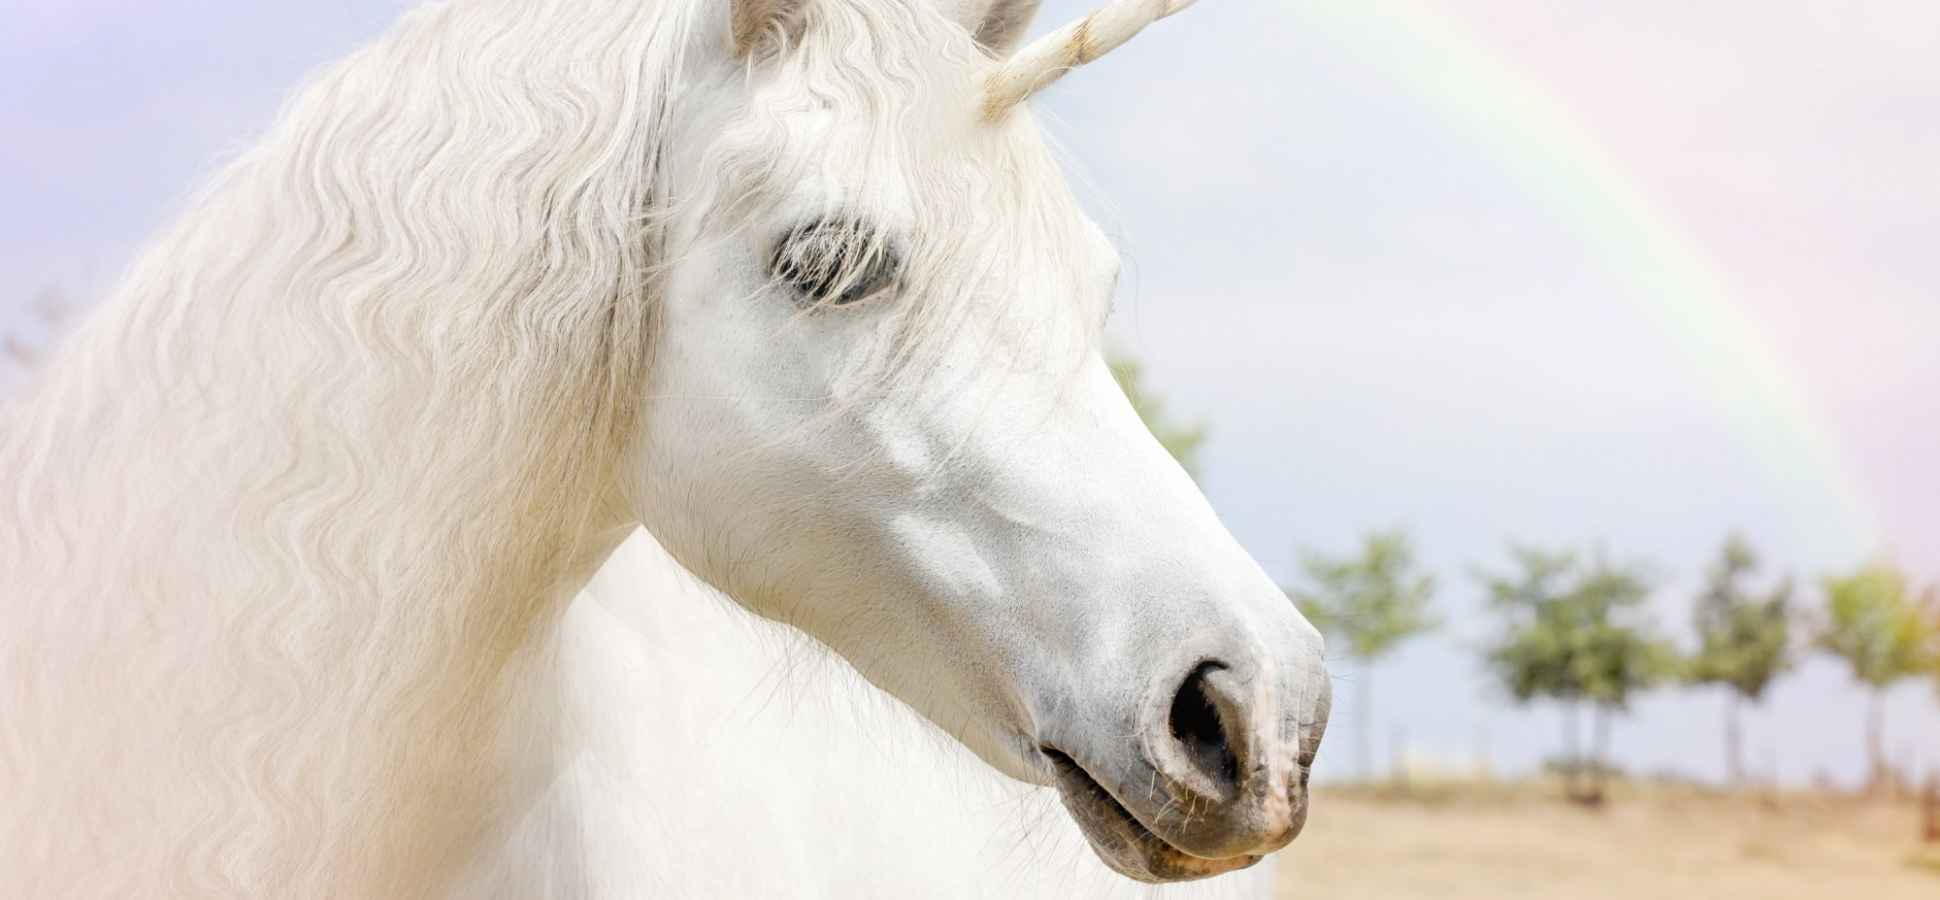 These Are the 4 Things That Make Unicorn Companies Worth $1 Billion